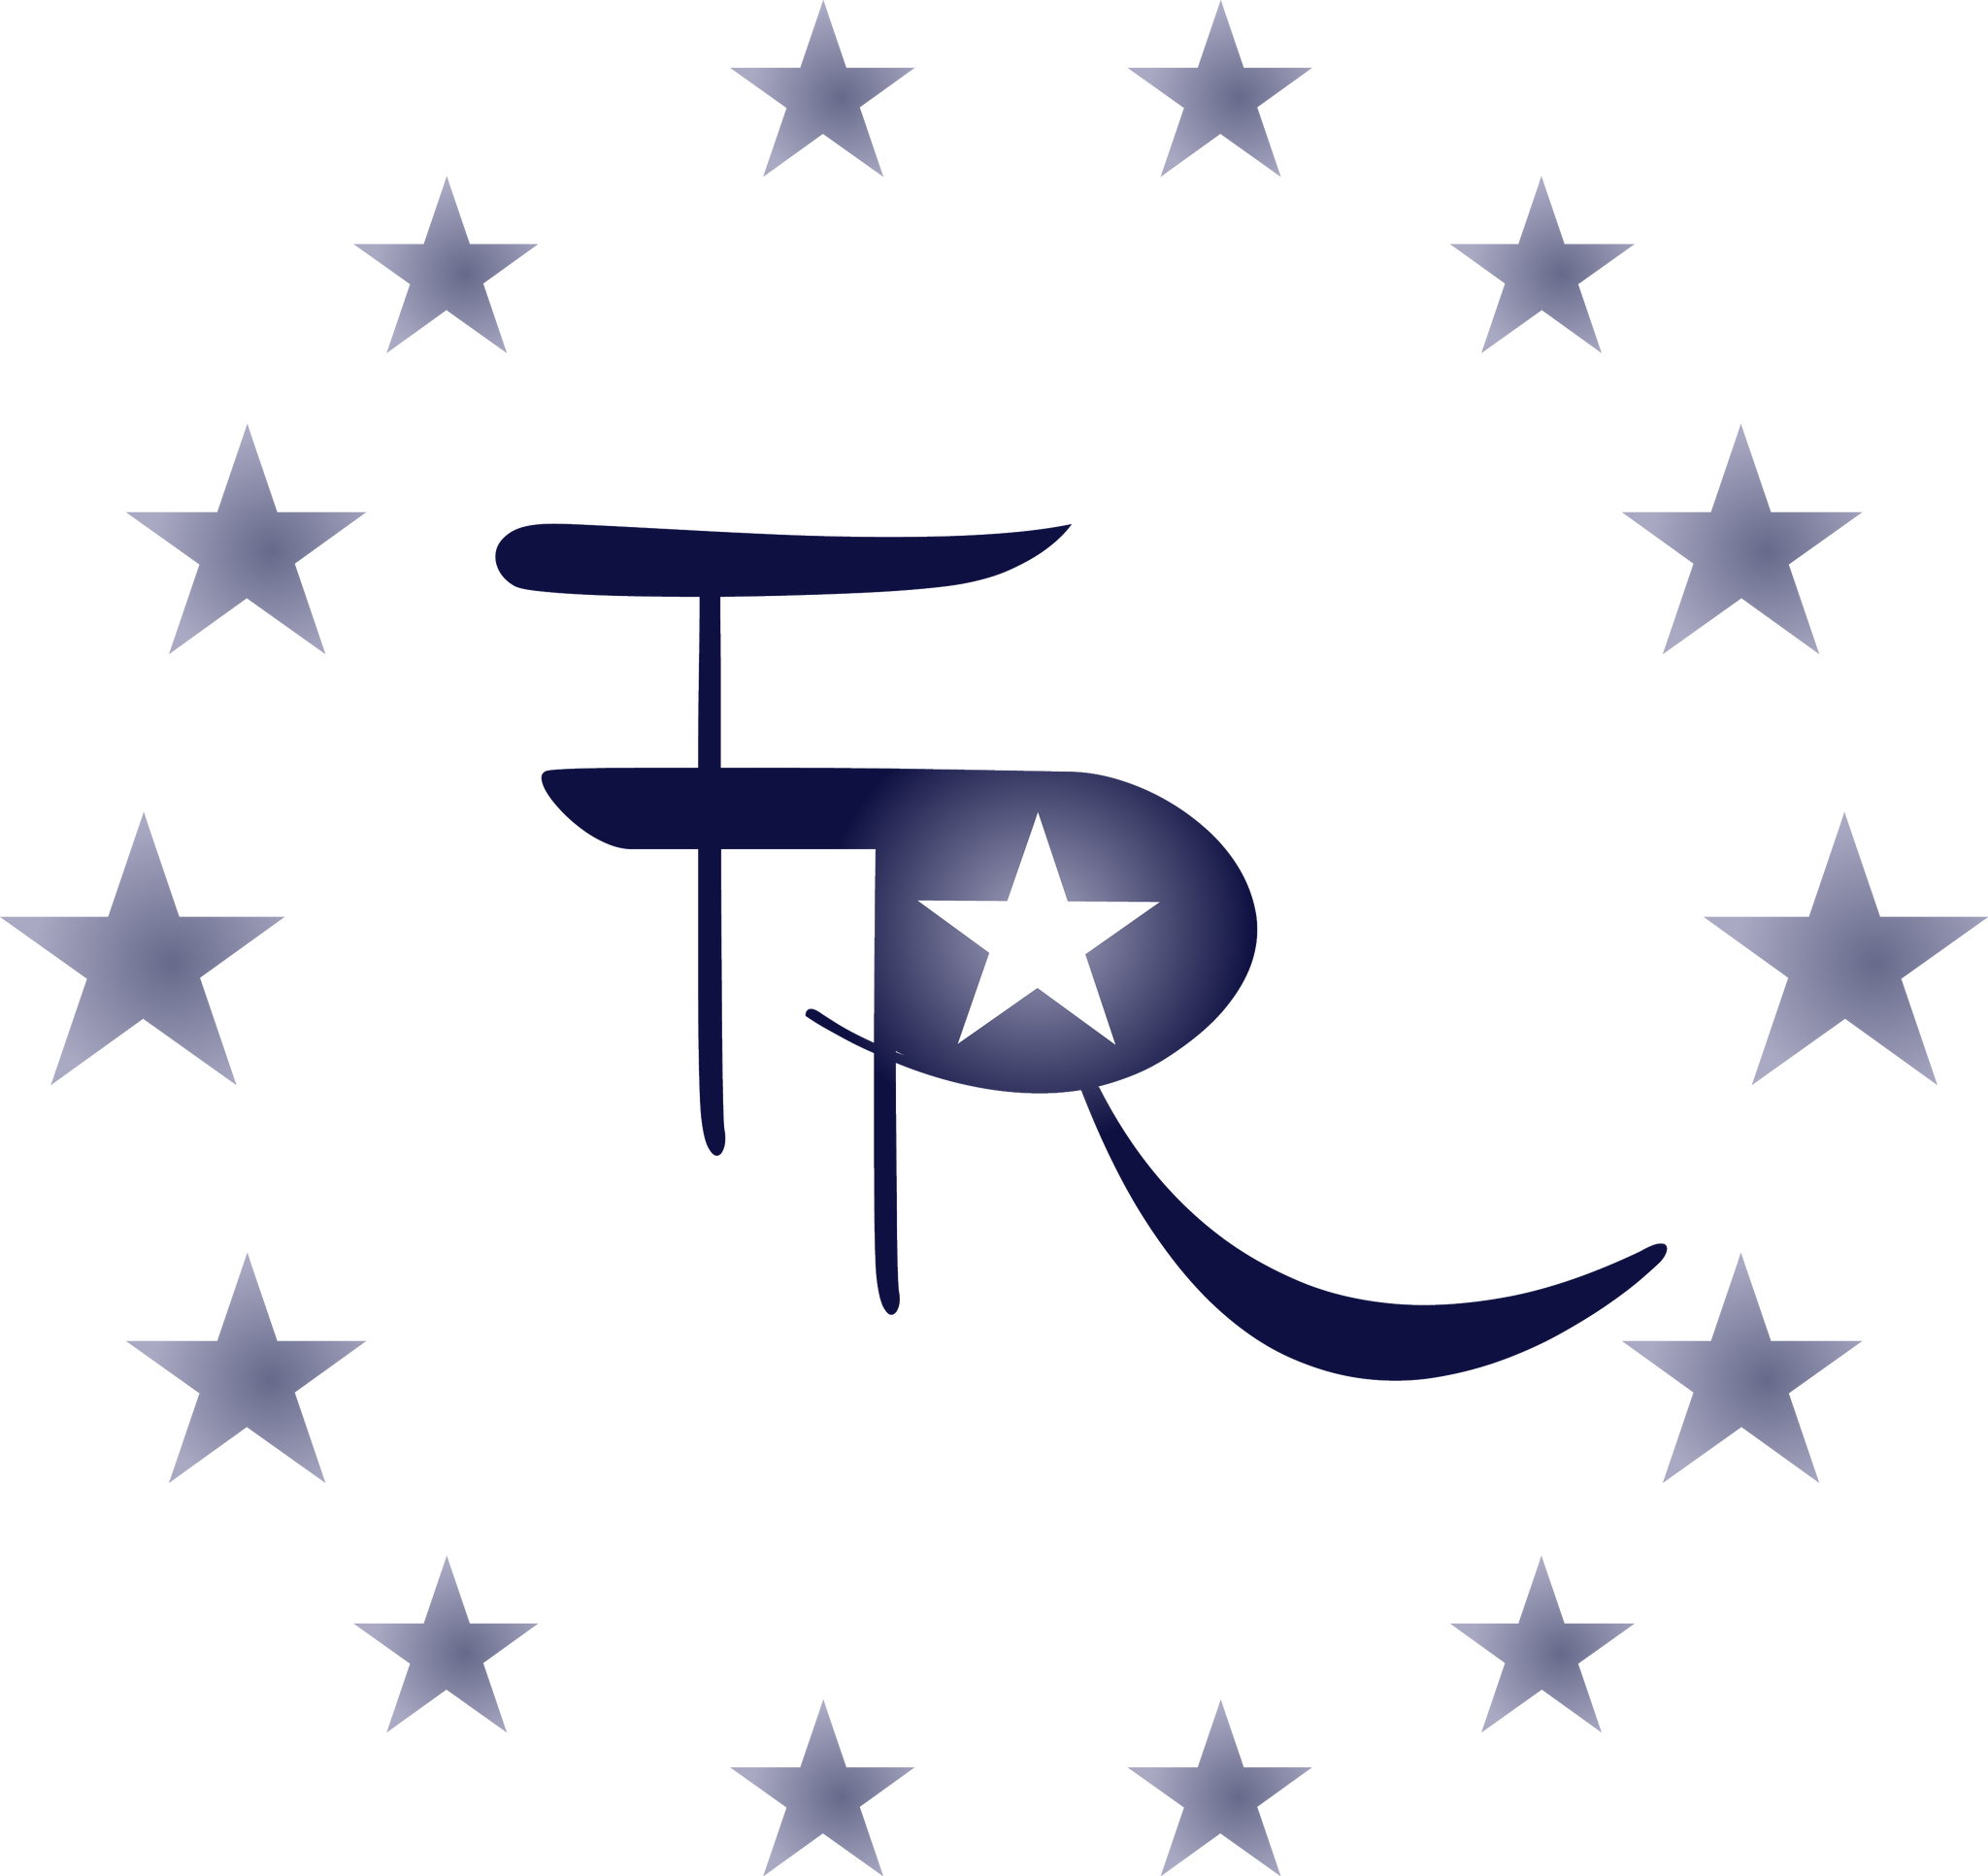 files/Forever_Revolutionary_monogram_e90740cb-6e5e-40f6-9a61-8fee2b510695.png